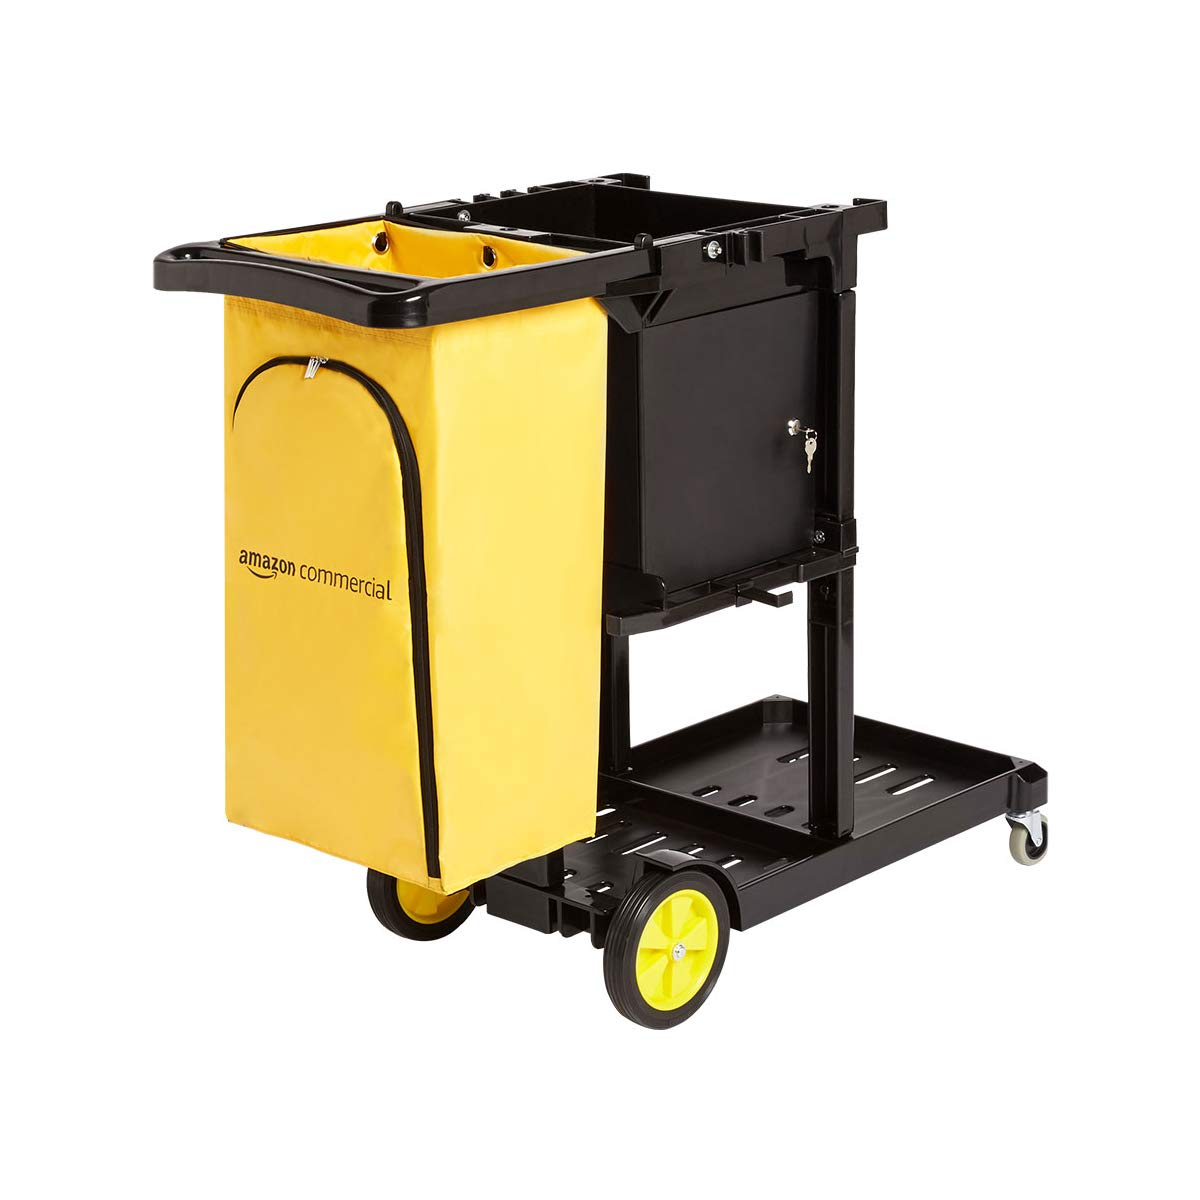 AmazonCommercial Janitorial Cart with Key-Locking Cabinet, Black by AmazonCommercial